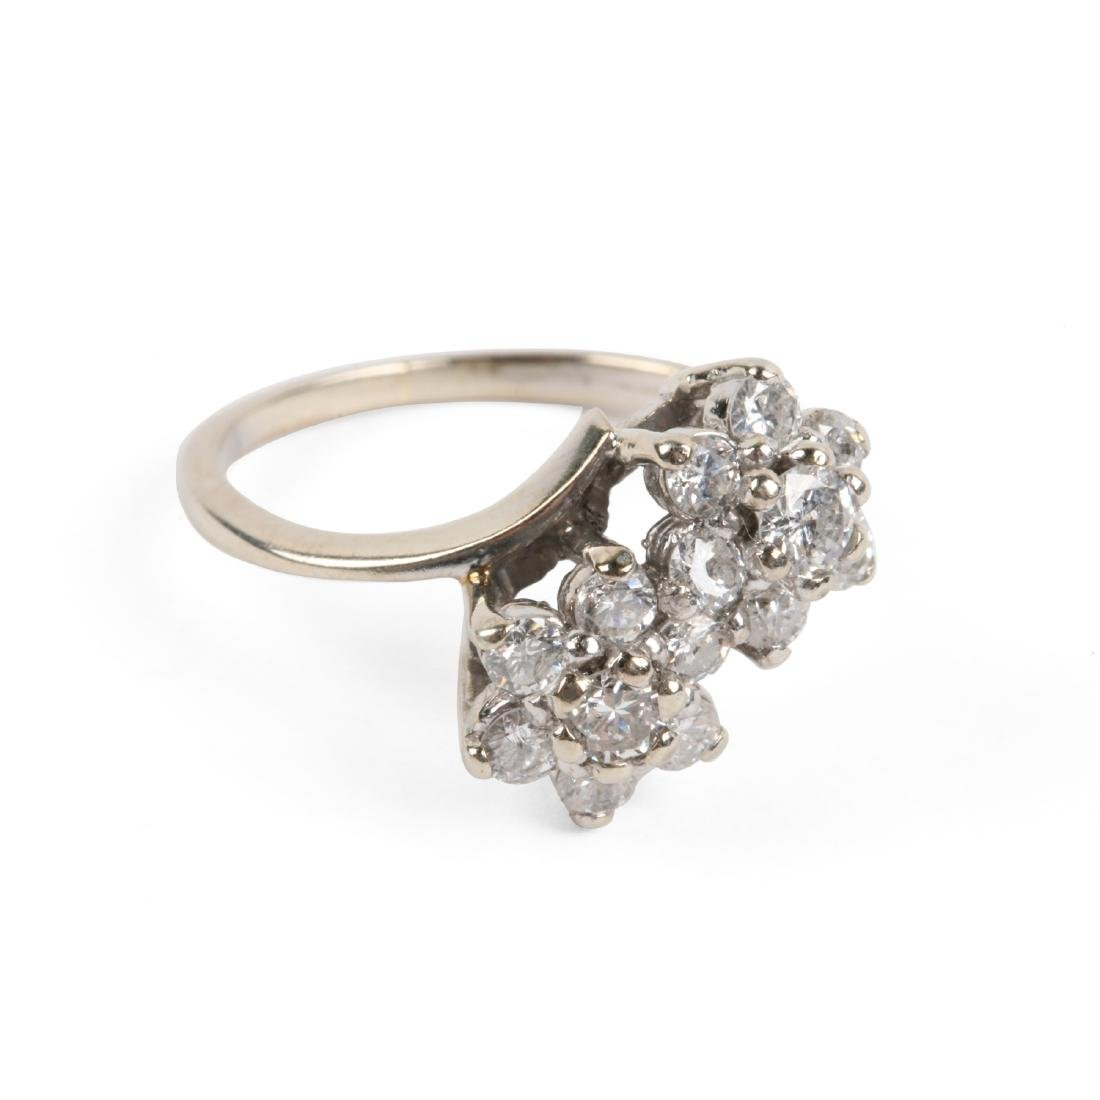 A 14k Gold & Diamond Cluster Ring